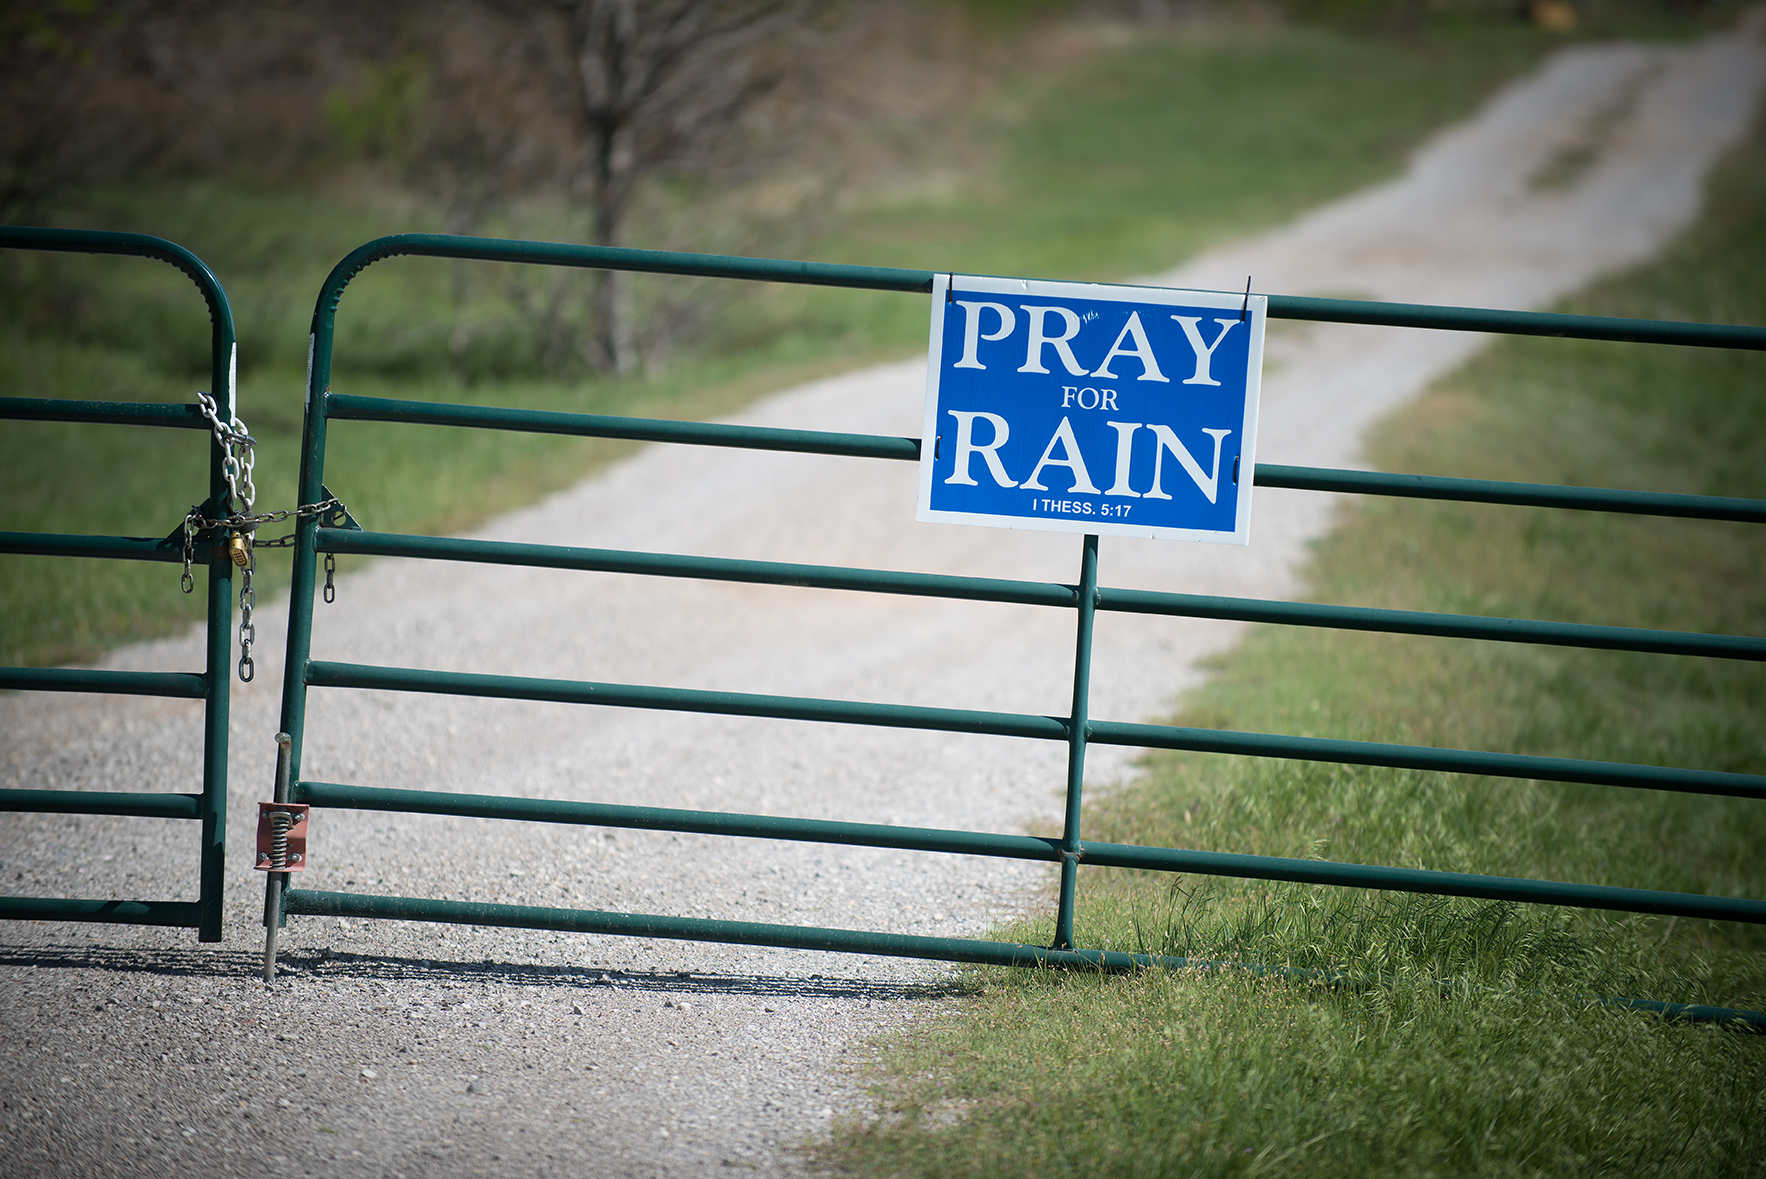 A sign encouraging passersby to pray for rain is attached to a ranch gate on Highway 1954 just south of Wichita Falls, Texas where the area is dealing with severe drought conditions. Measures are underway in Wichita Falls to convert waste water into drinking water. Some residents say they'll pass on wastewater. ©2014 Robert W. Hart